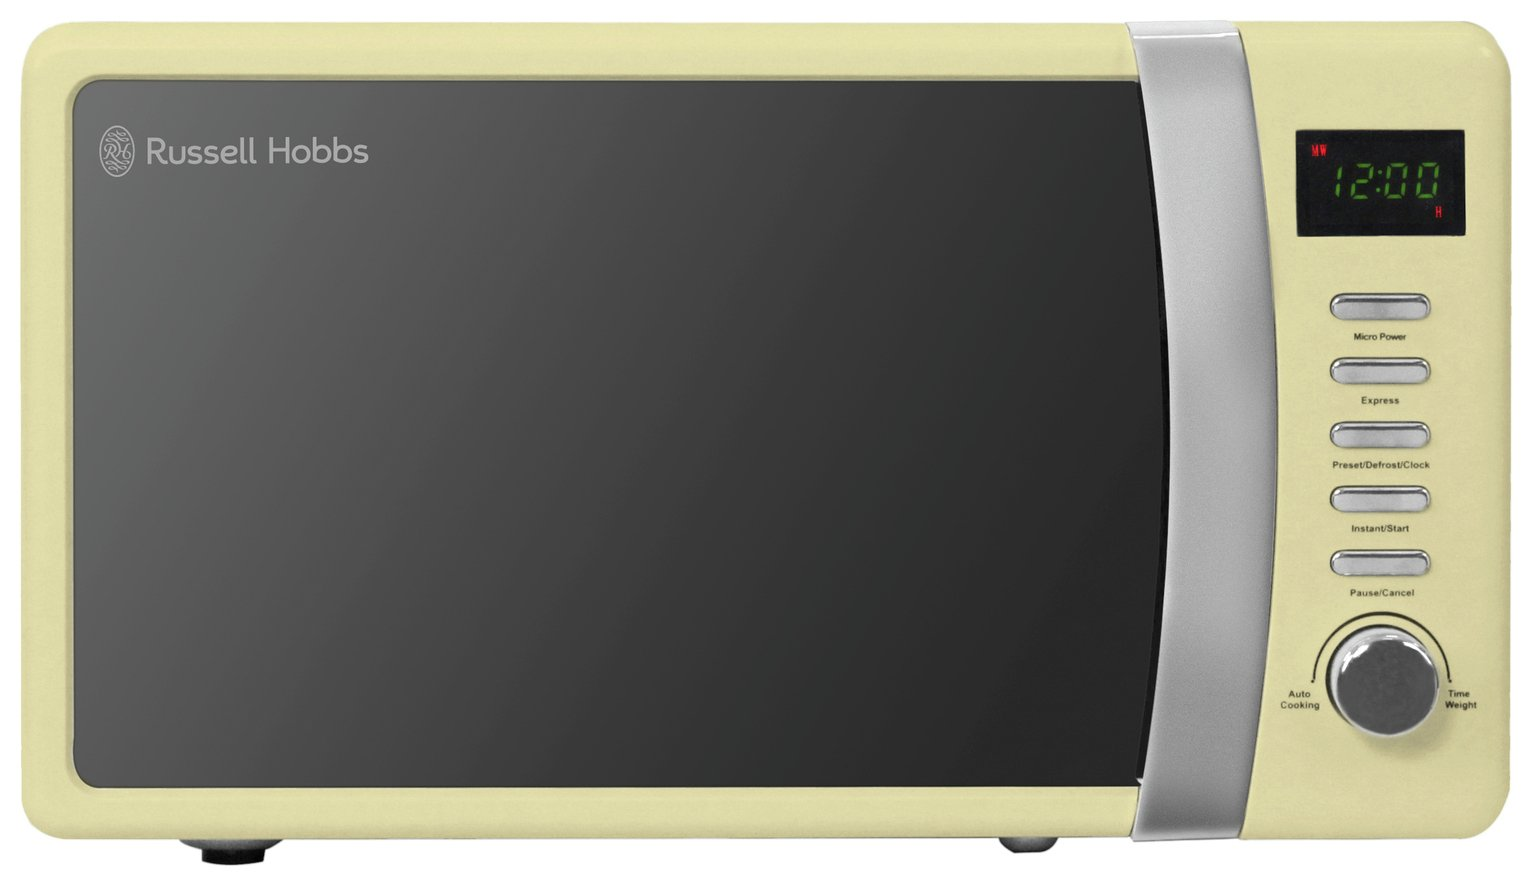 Russell Hobbs - Standard Microwave -Colours Plus -Cream